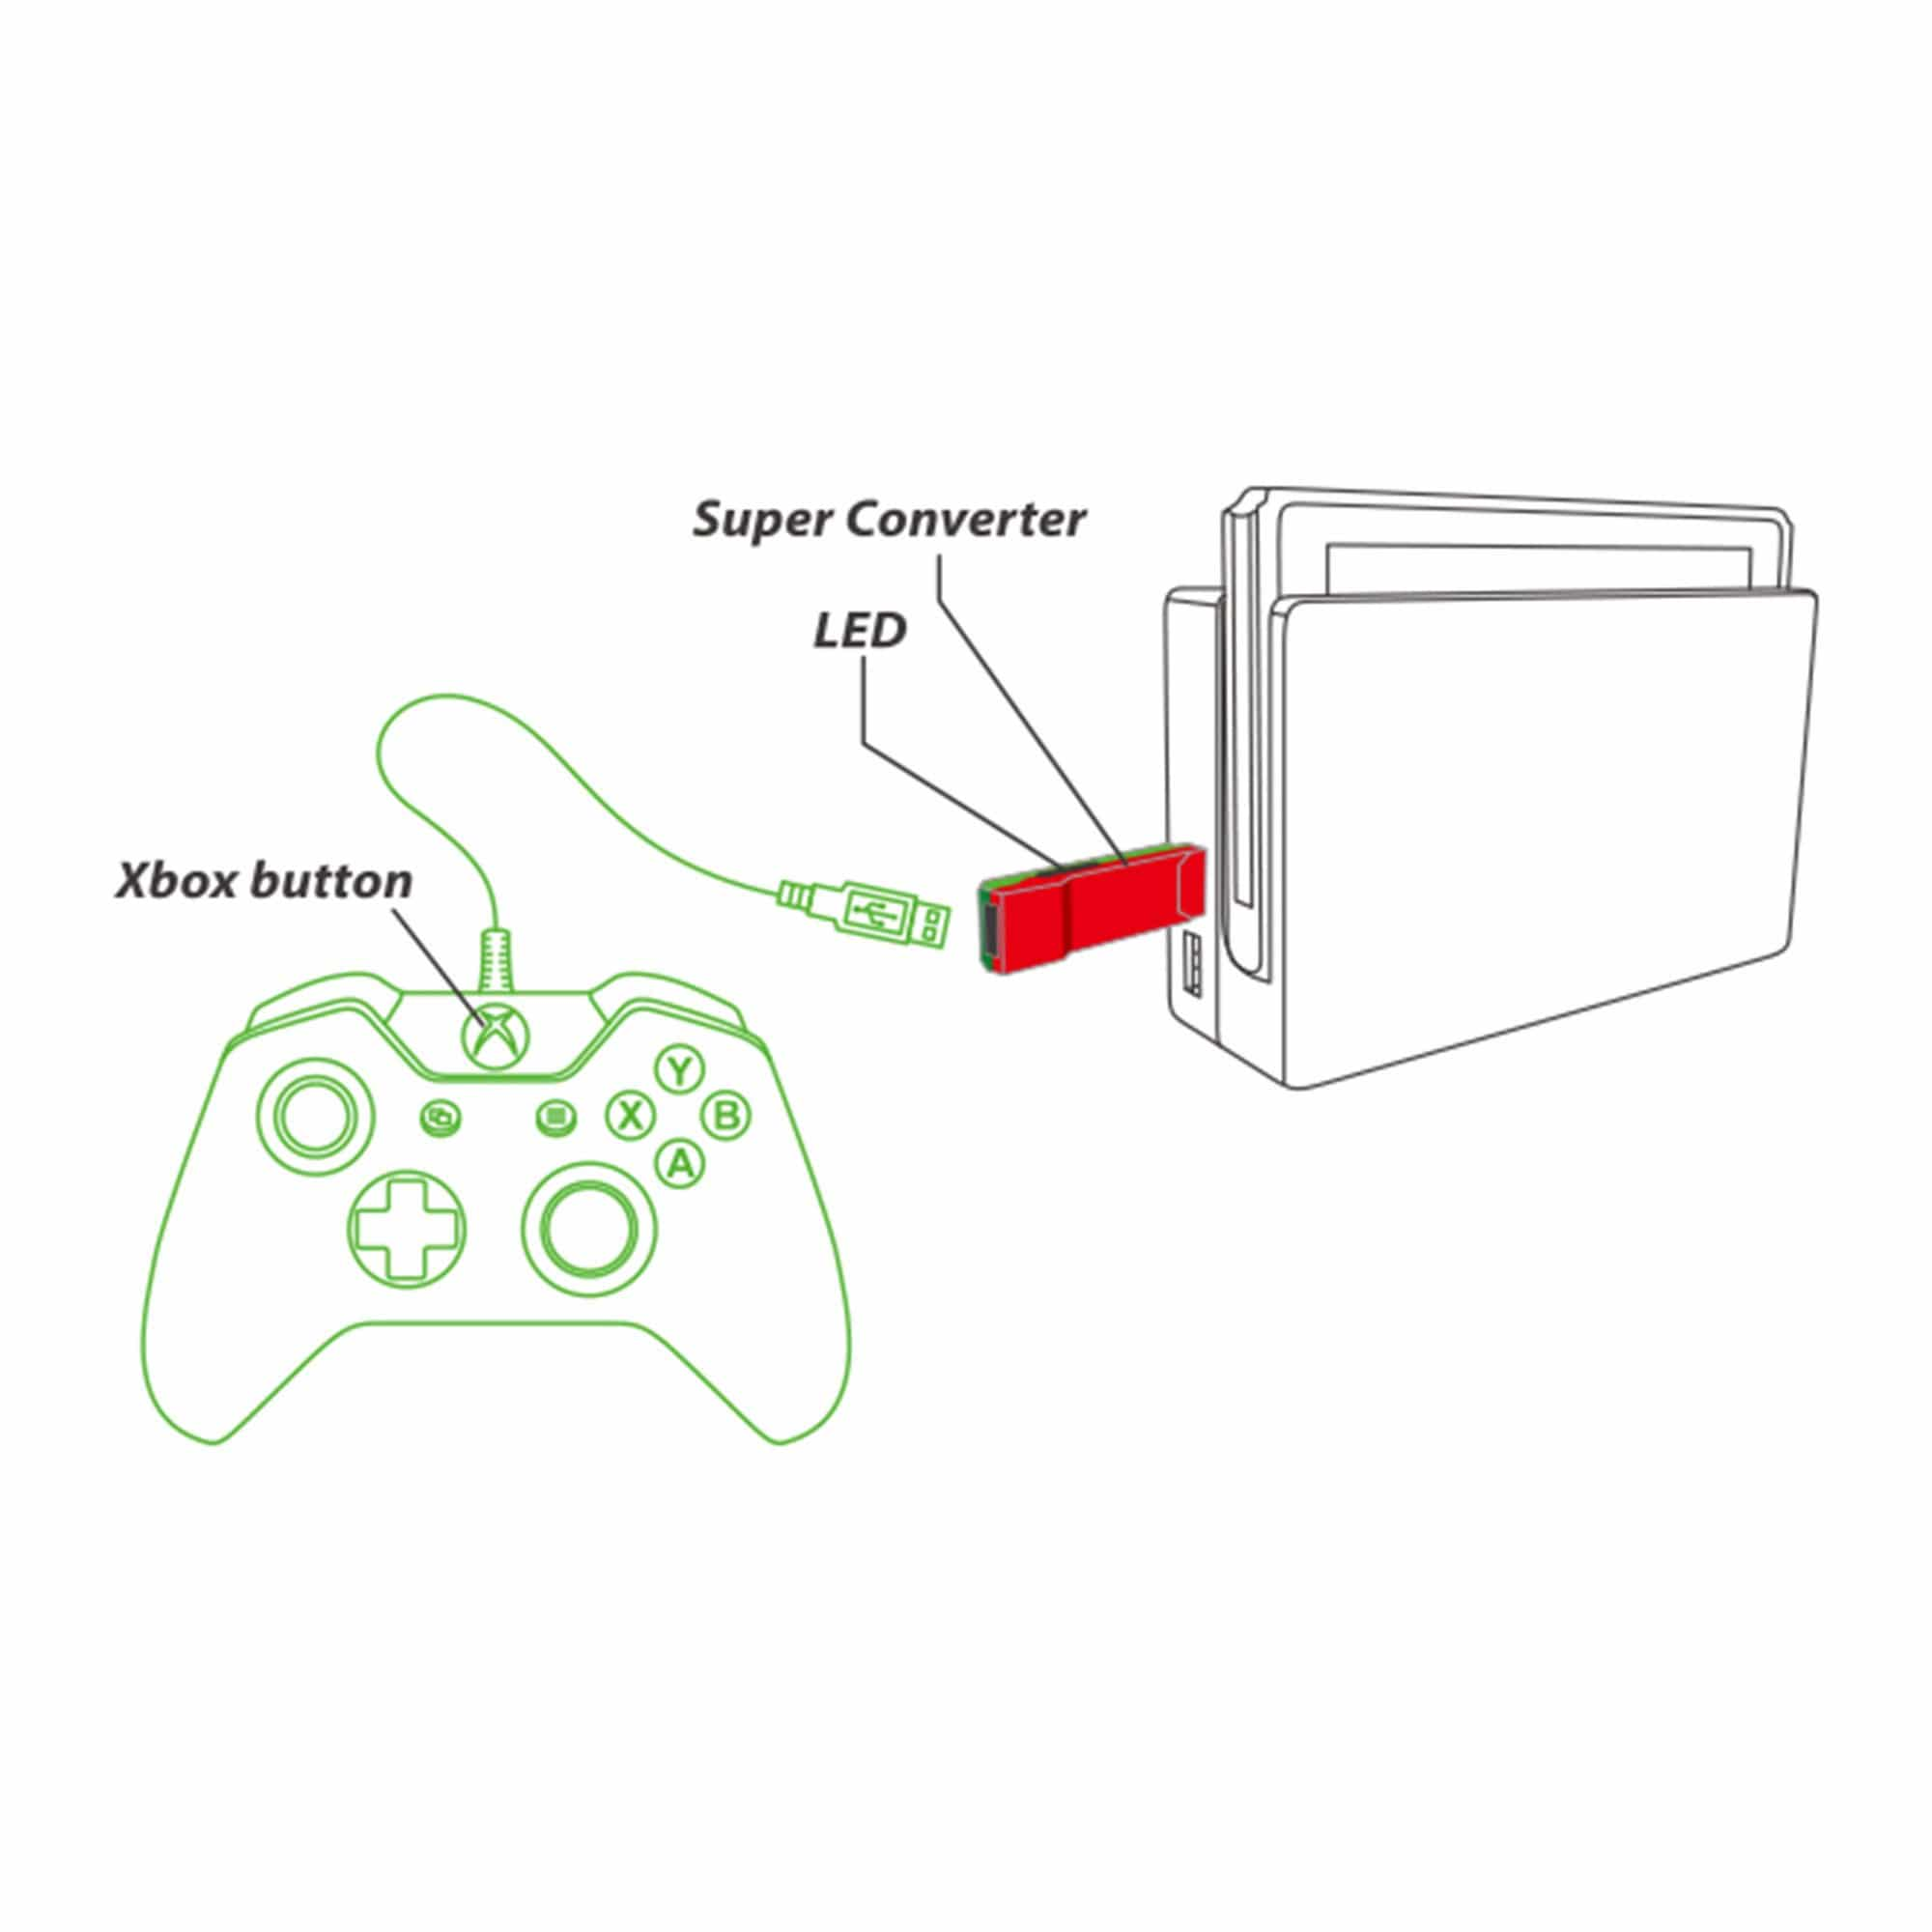 XBOX 360 / ONE Controller to Nintendo Switch Super